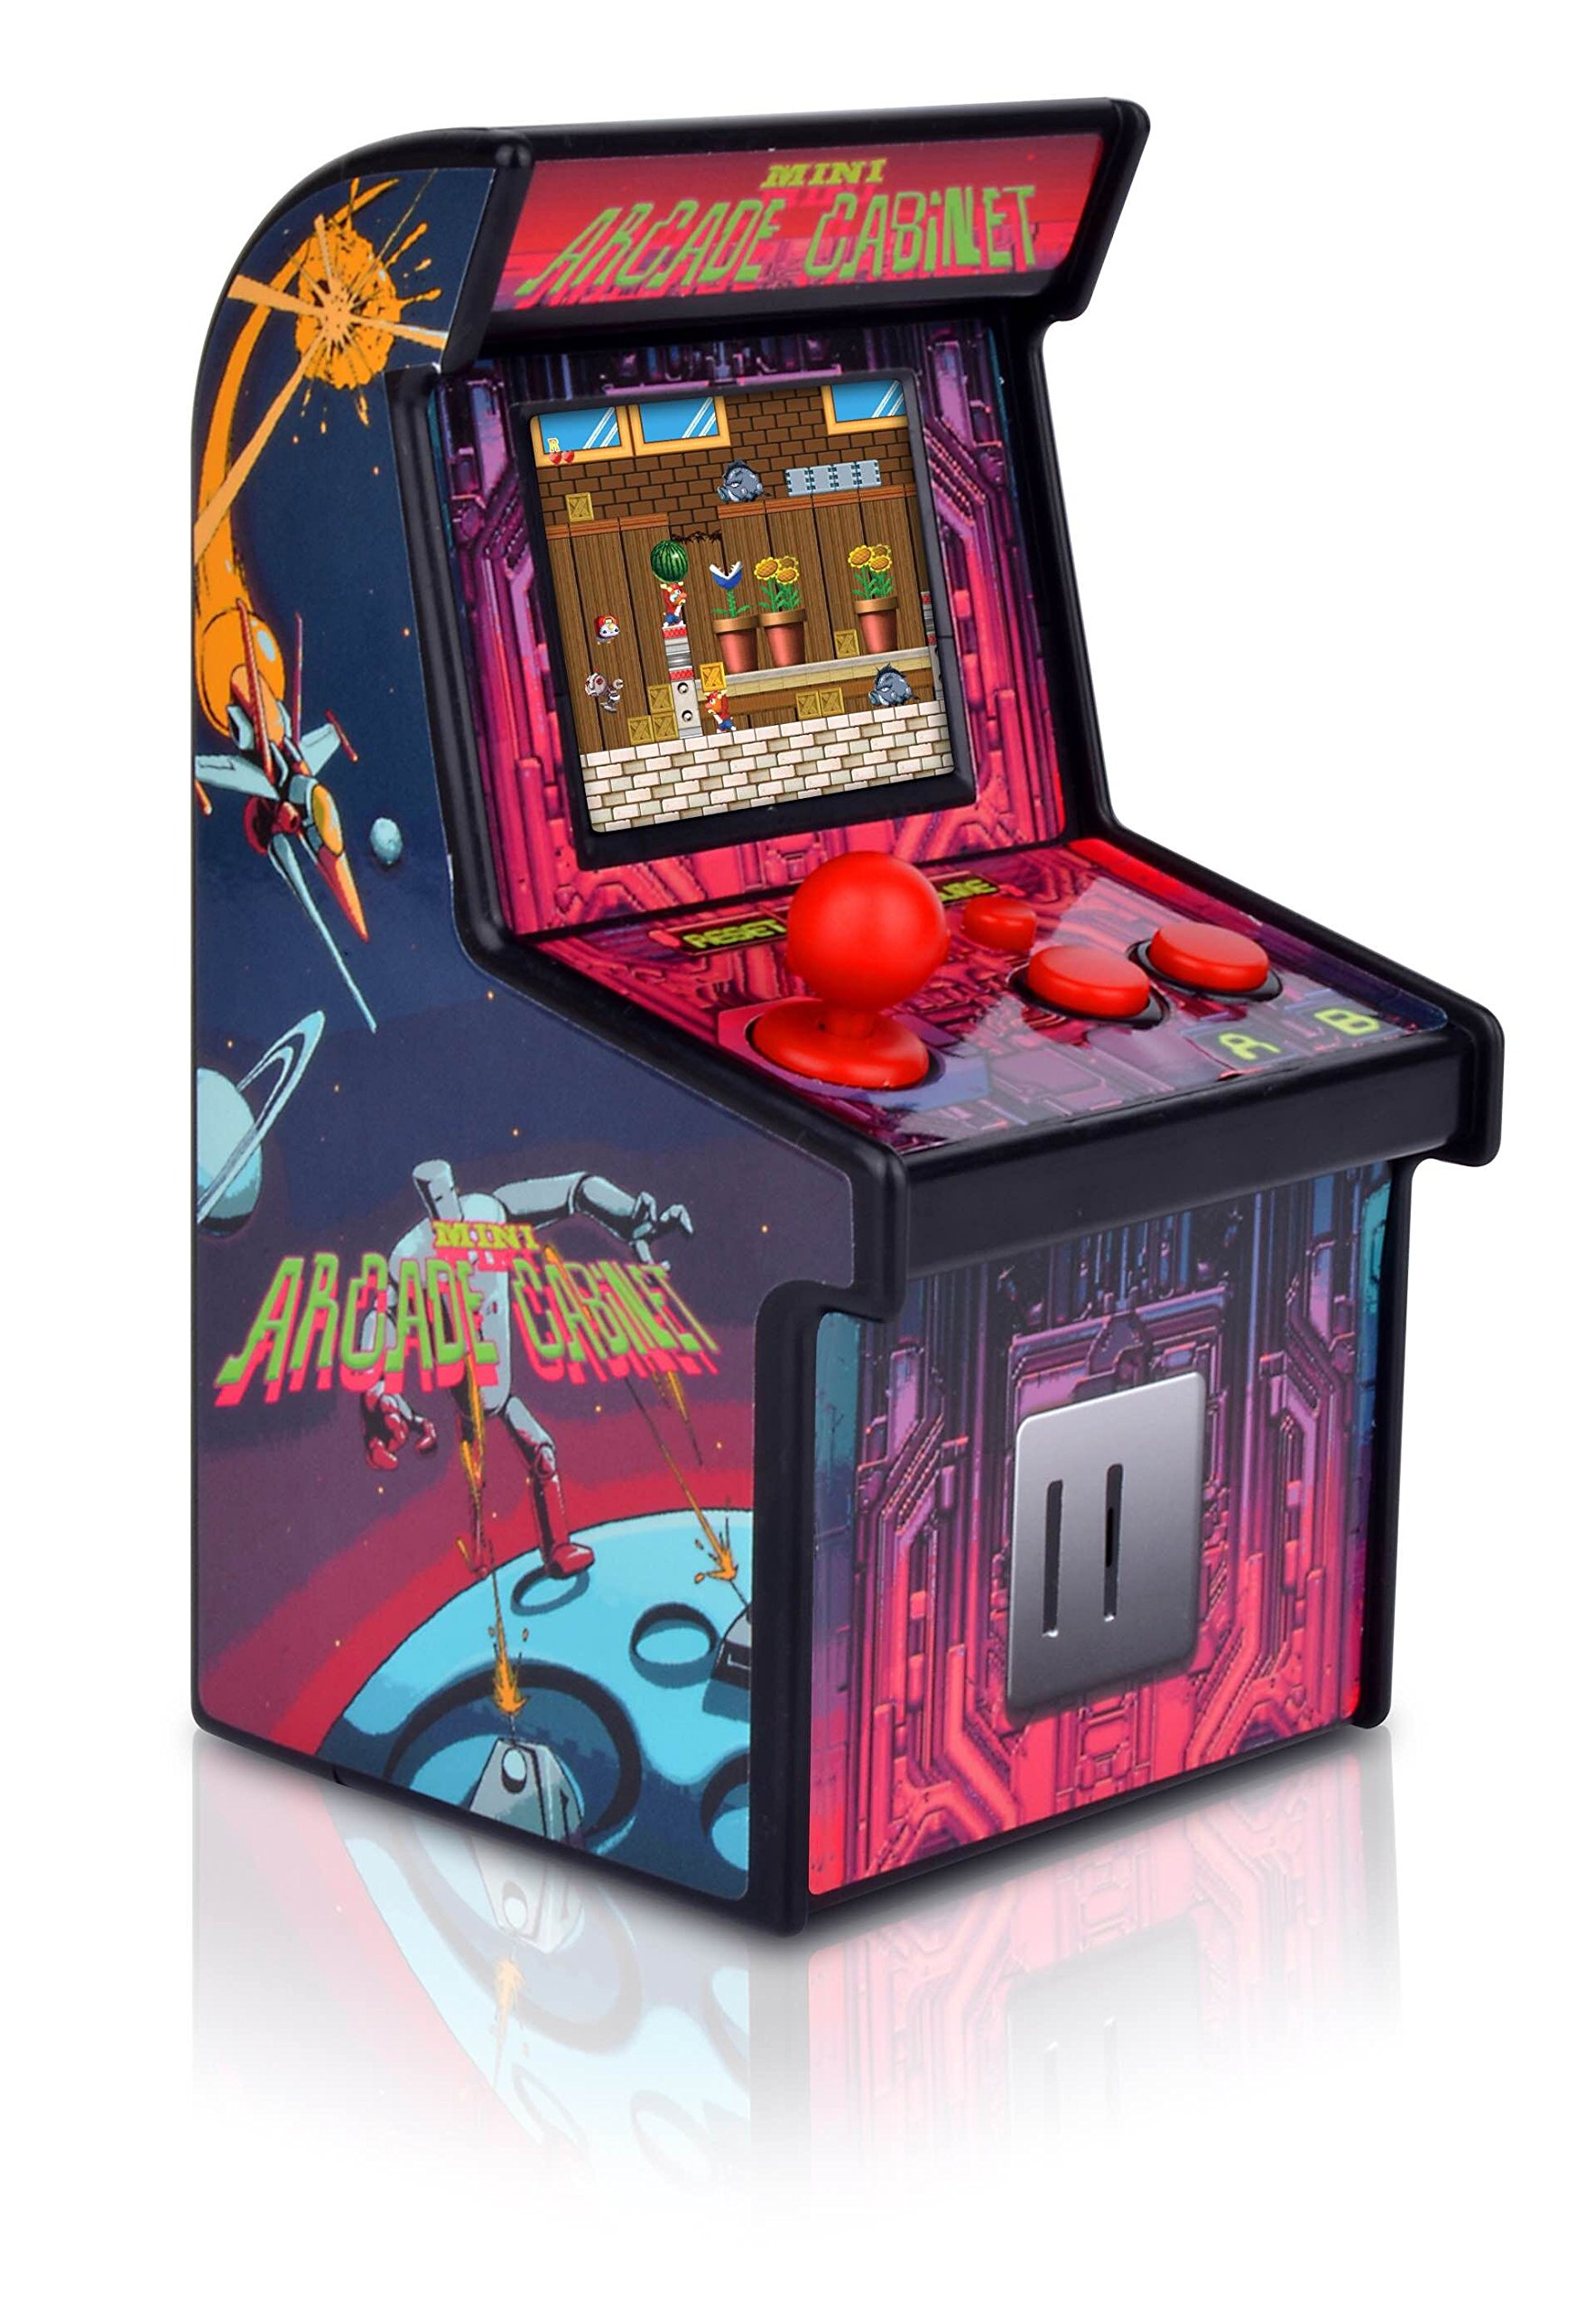 Yuntab Mini Retro Arcade Machine Handheld Gaming System with 200 Built-in Video Games for Kids